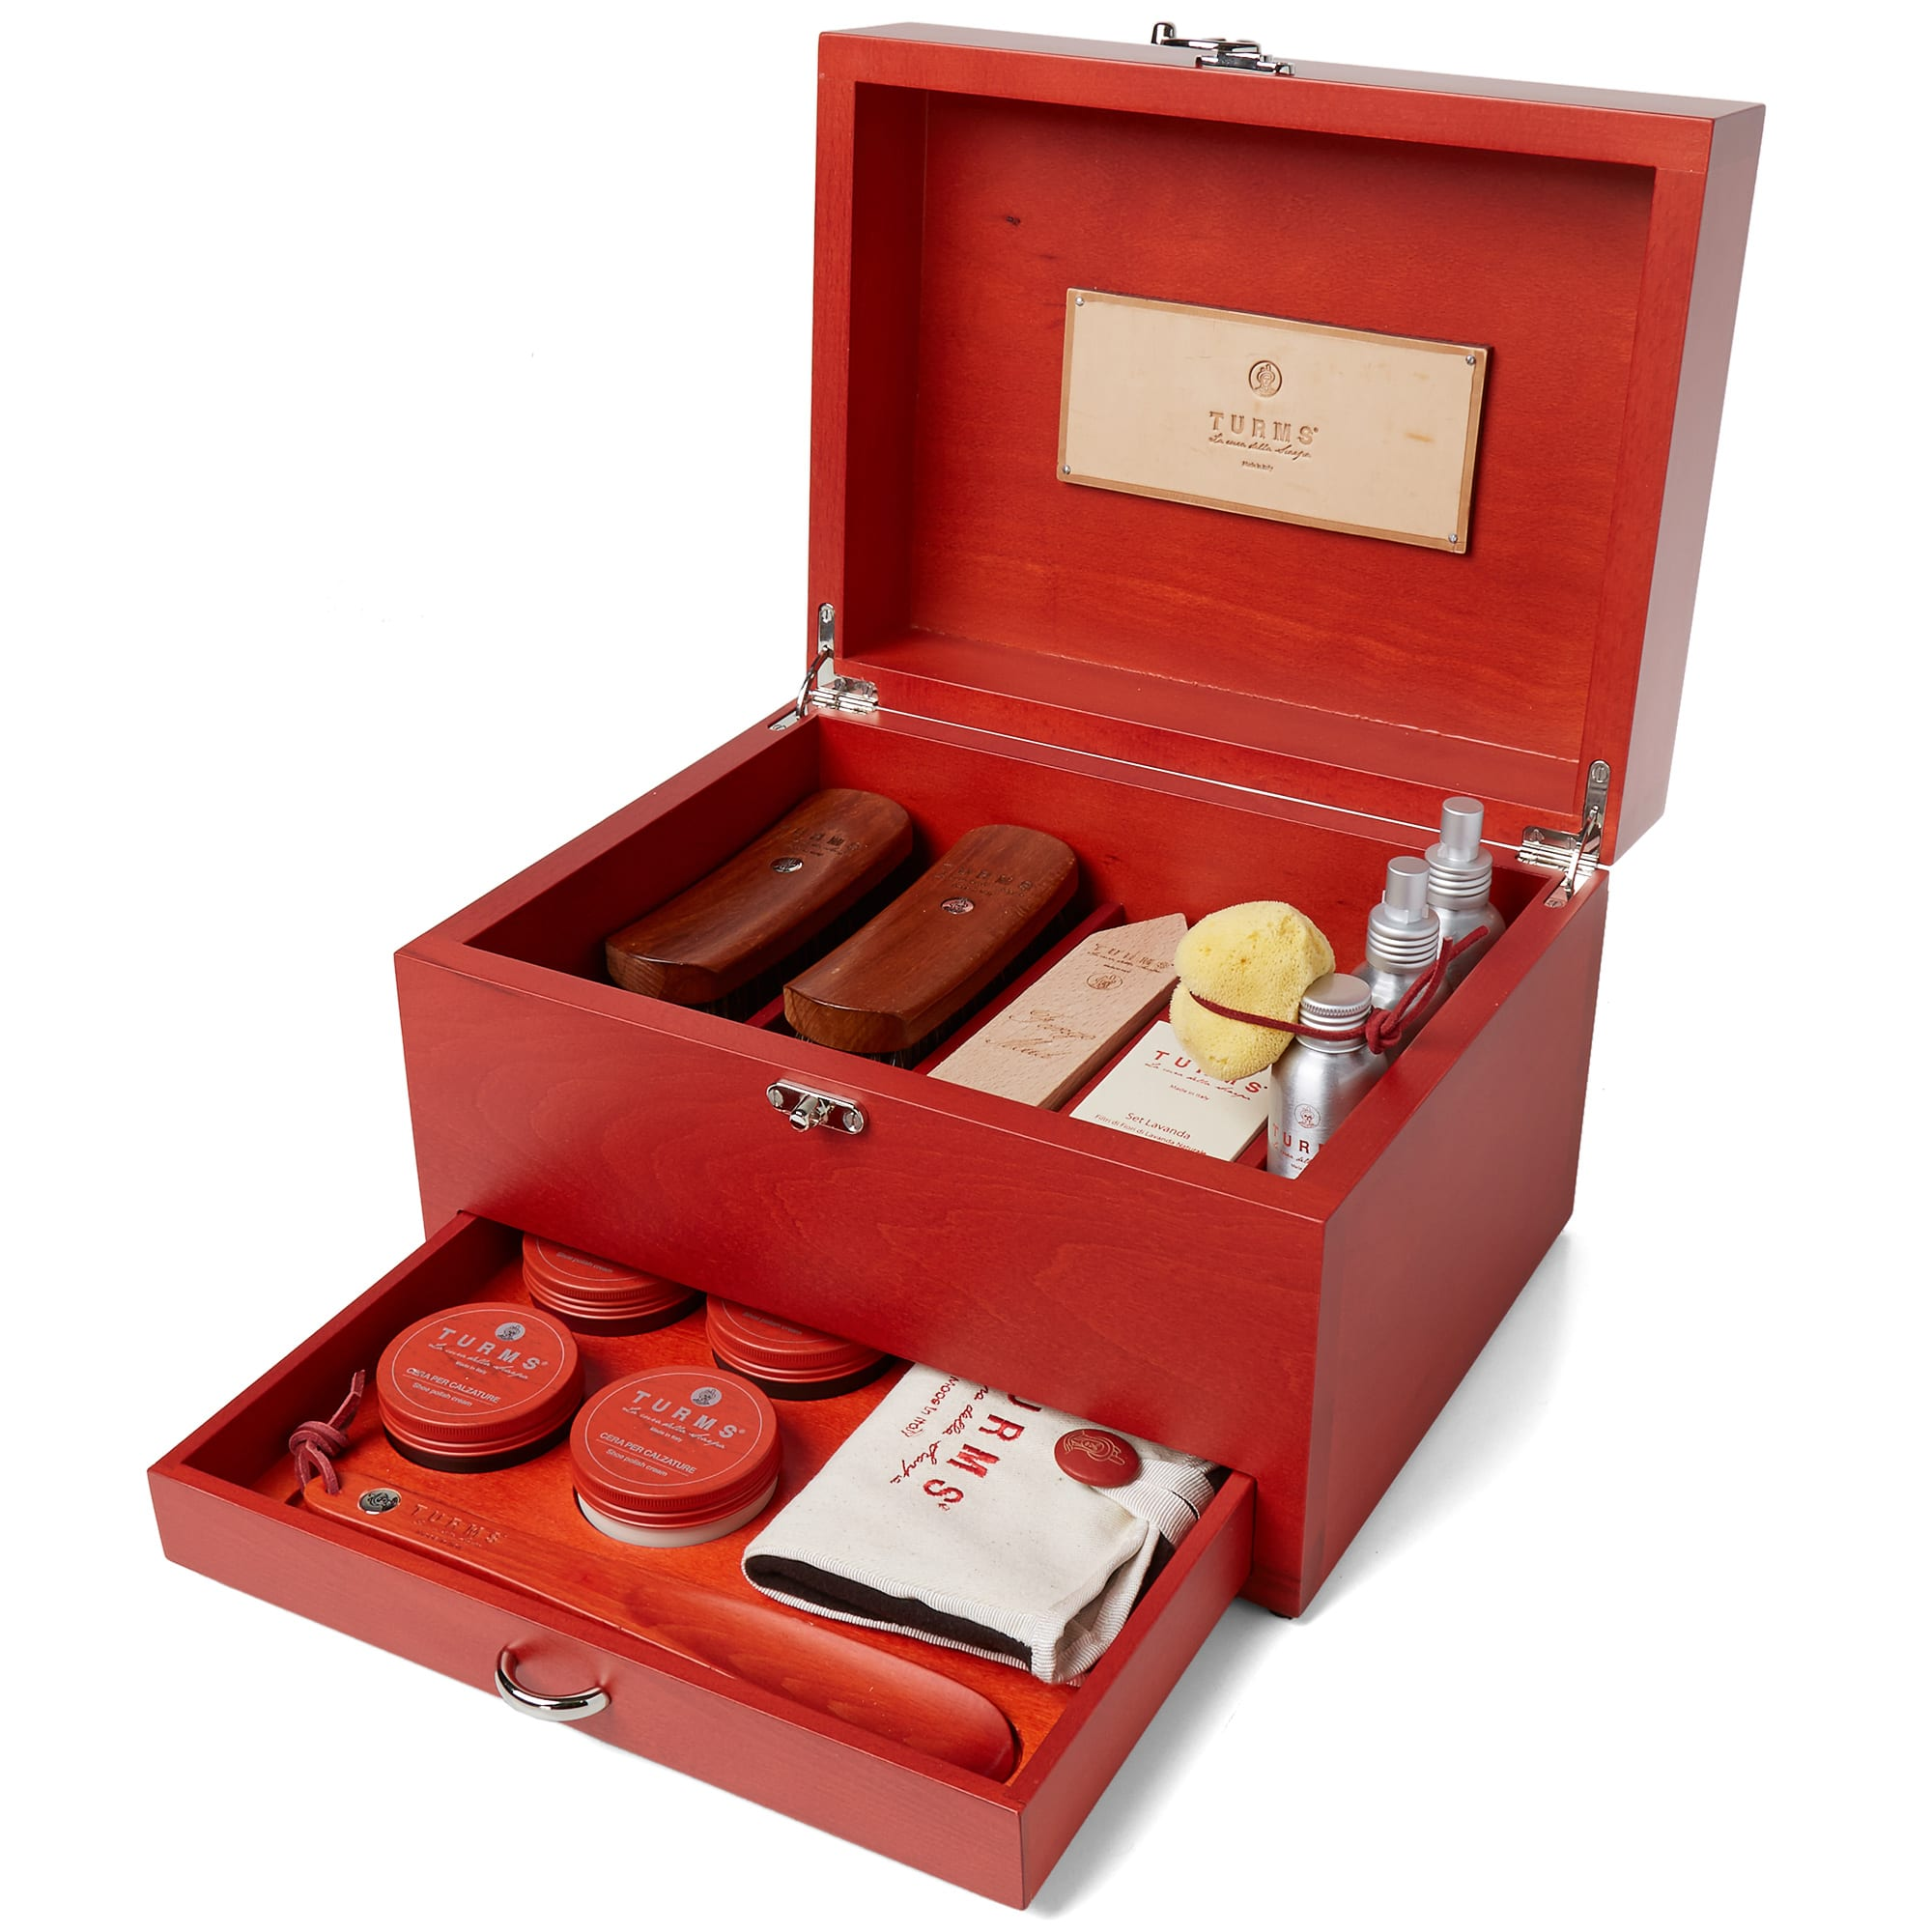 TURMS Turms Wooden Care Case in Red